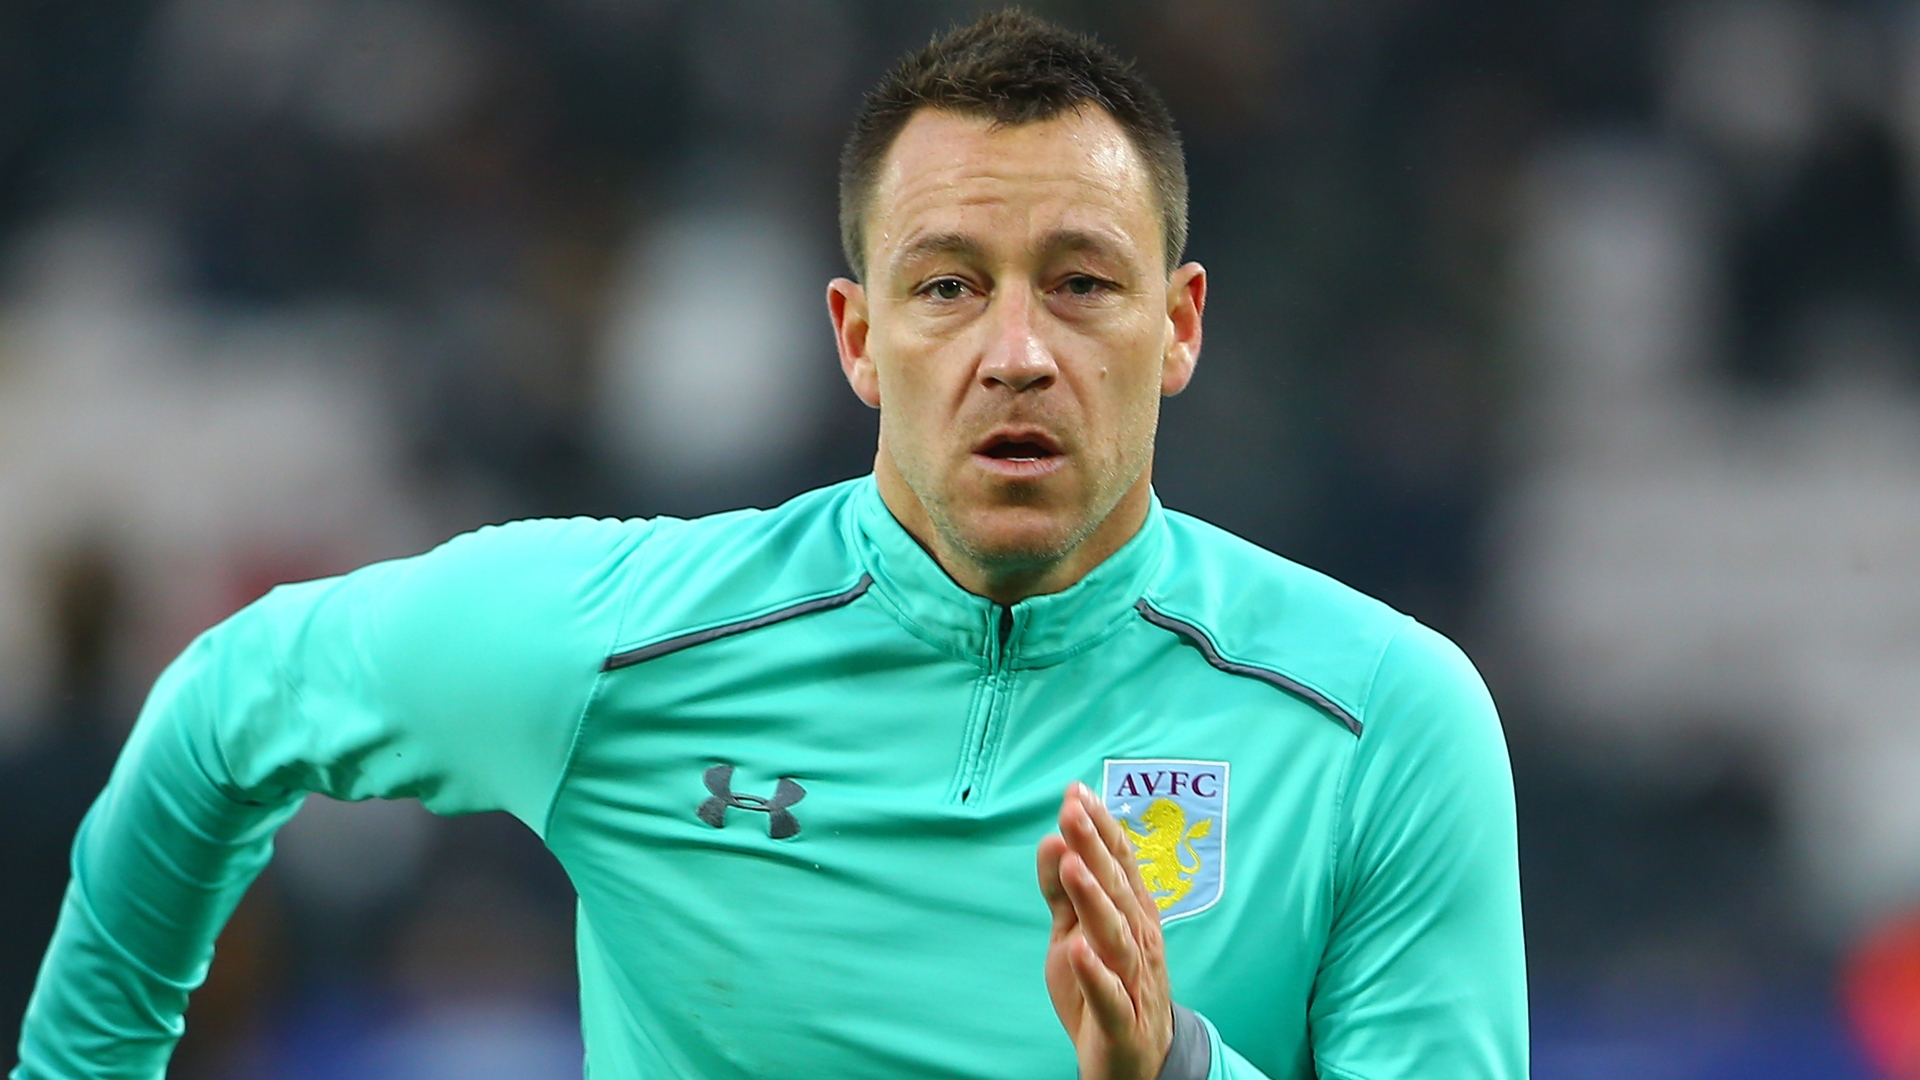 John Terry next club: Chelsea odds collapse but Championship move still likely